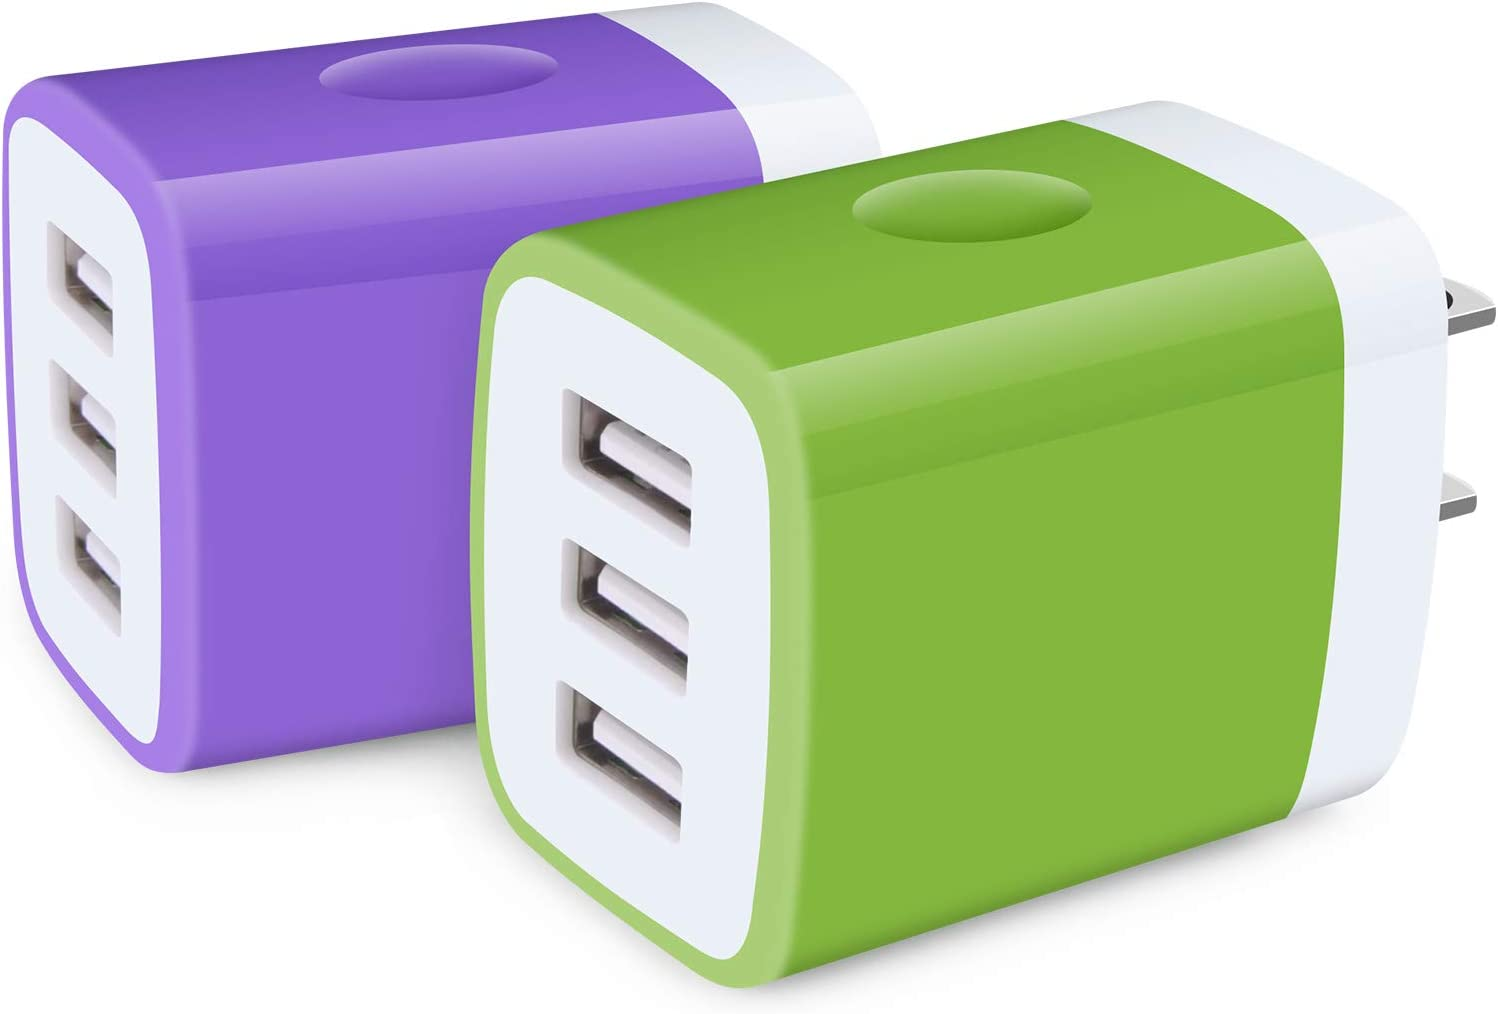 Charger Plug, 2Pack 3.1A Wall Charger Multi Port Power Adapter Fast Charging Block Plug Compatible with iPhone 12 Pro Max/11 Pro Max/SE/X/8/7/6 Plus,Samsung Galaxy Note 20 Ultra/10+/9 S20 S21 Ultra 5G